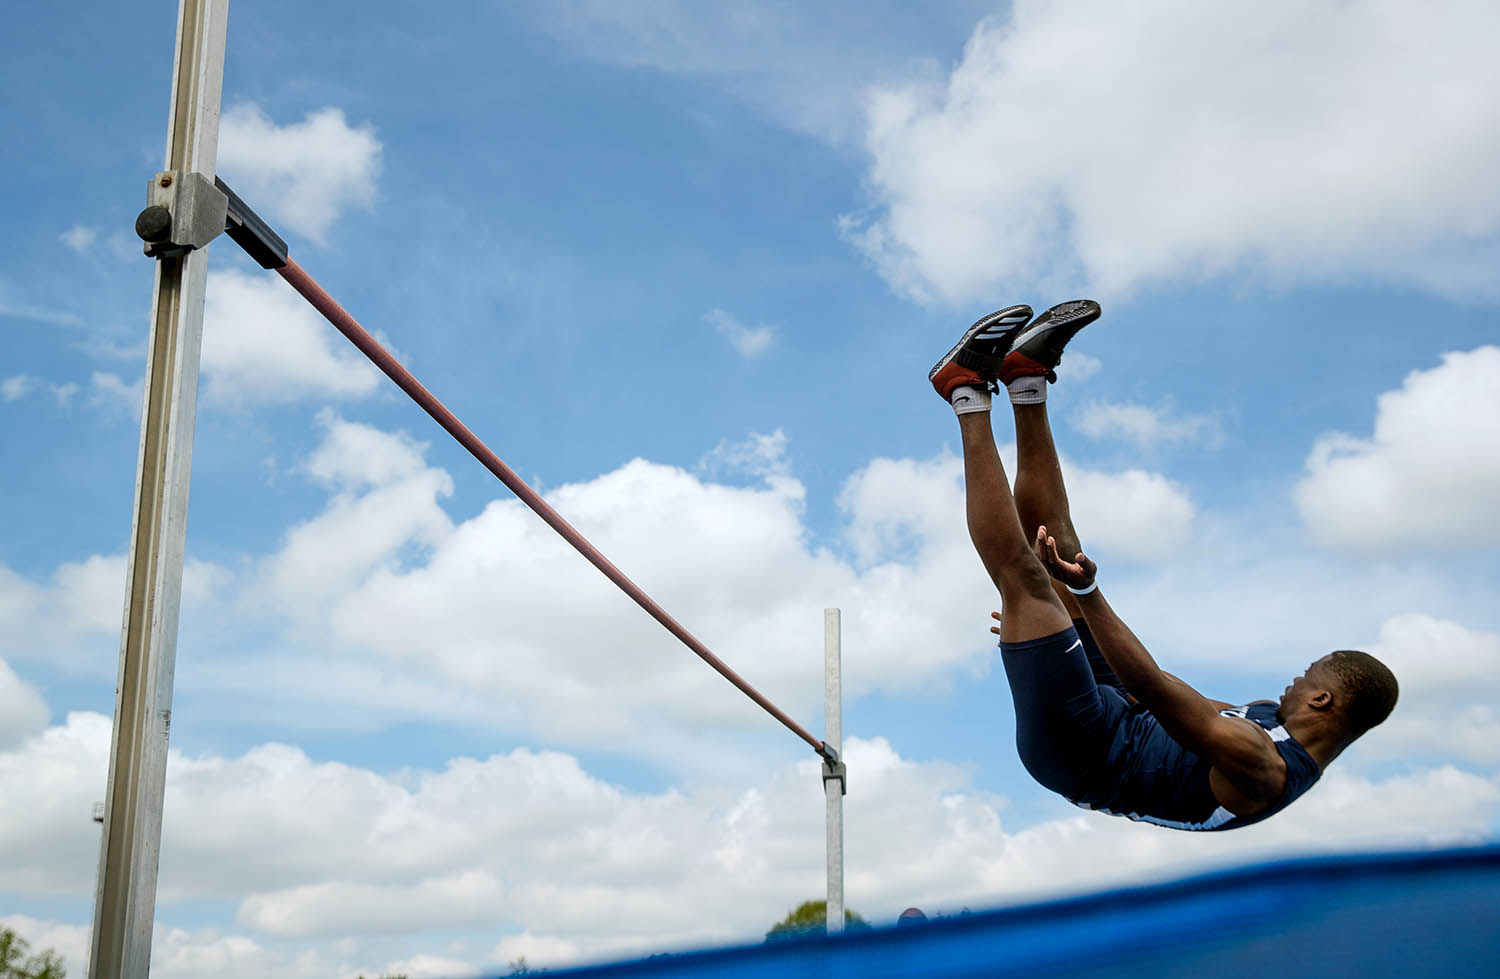 Southeast's David Emuze glides down for a landing in the high jump at the 2019 Springfield Boys City Meet at Memorial Stadium Saturday, May 4, 2019. Emuze won the event with a jump of 6-05 feet. [Ted Schurter/The State Journal-Register]